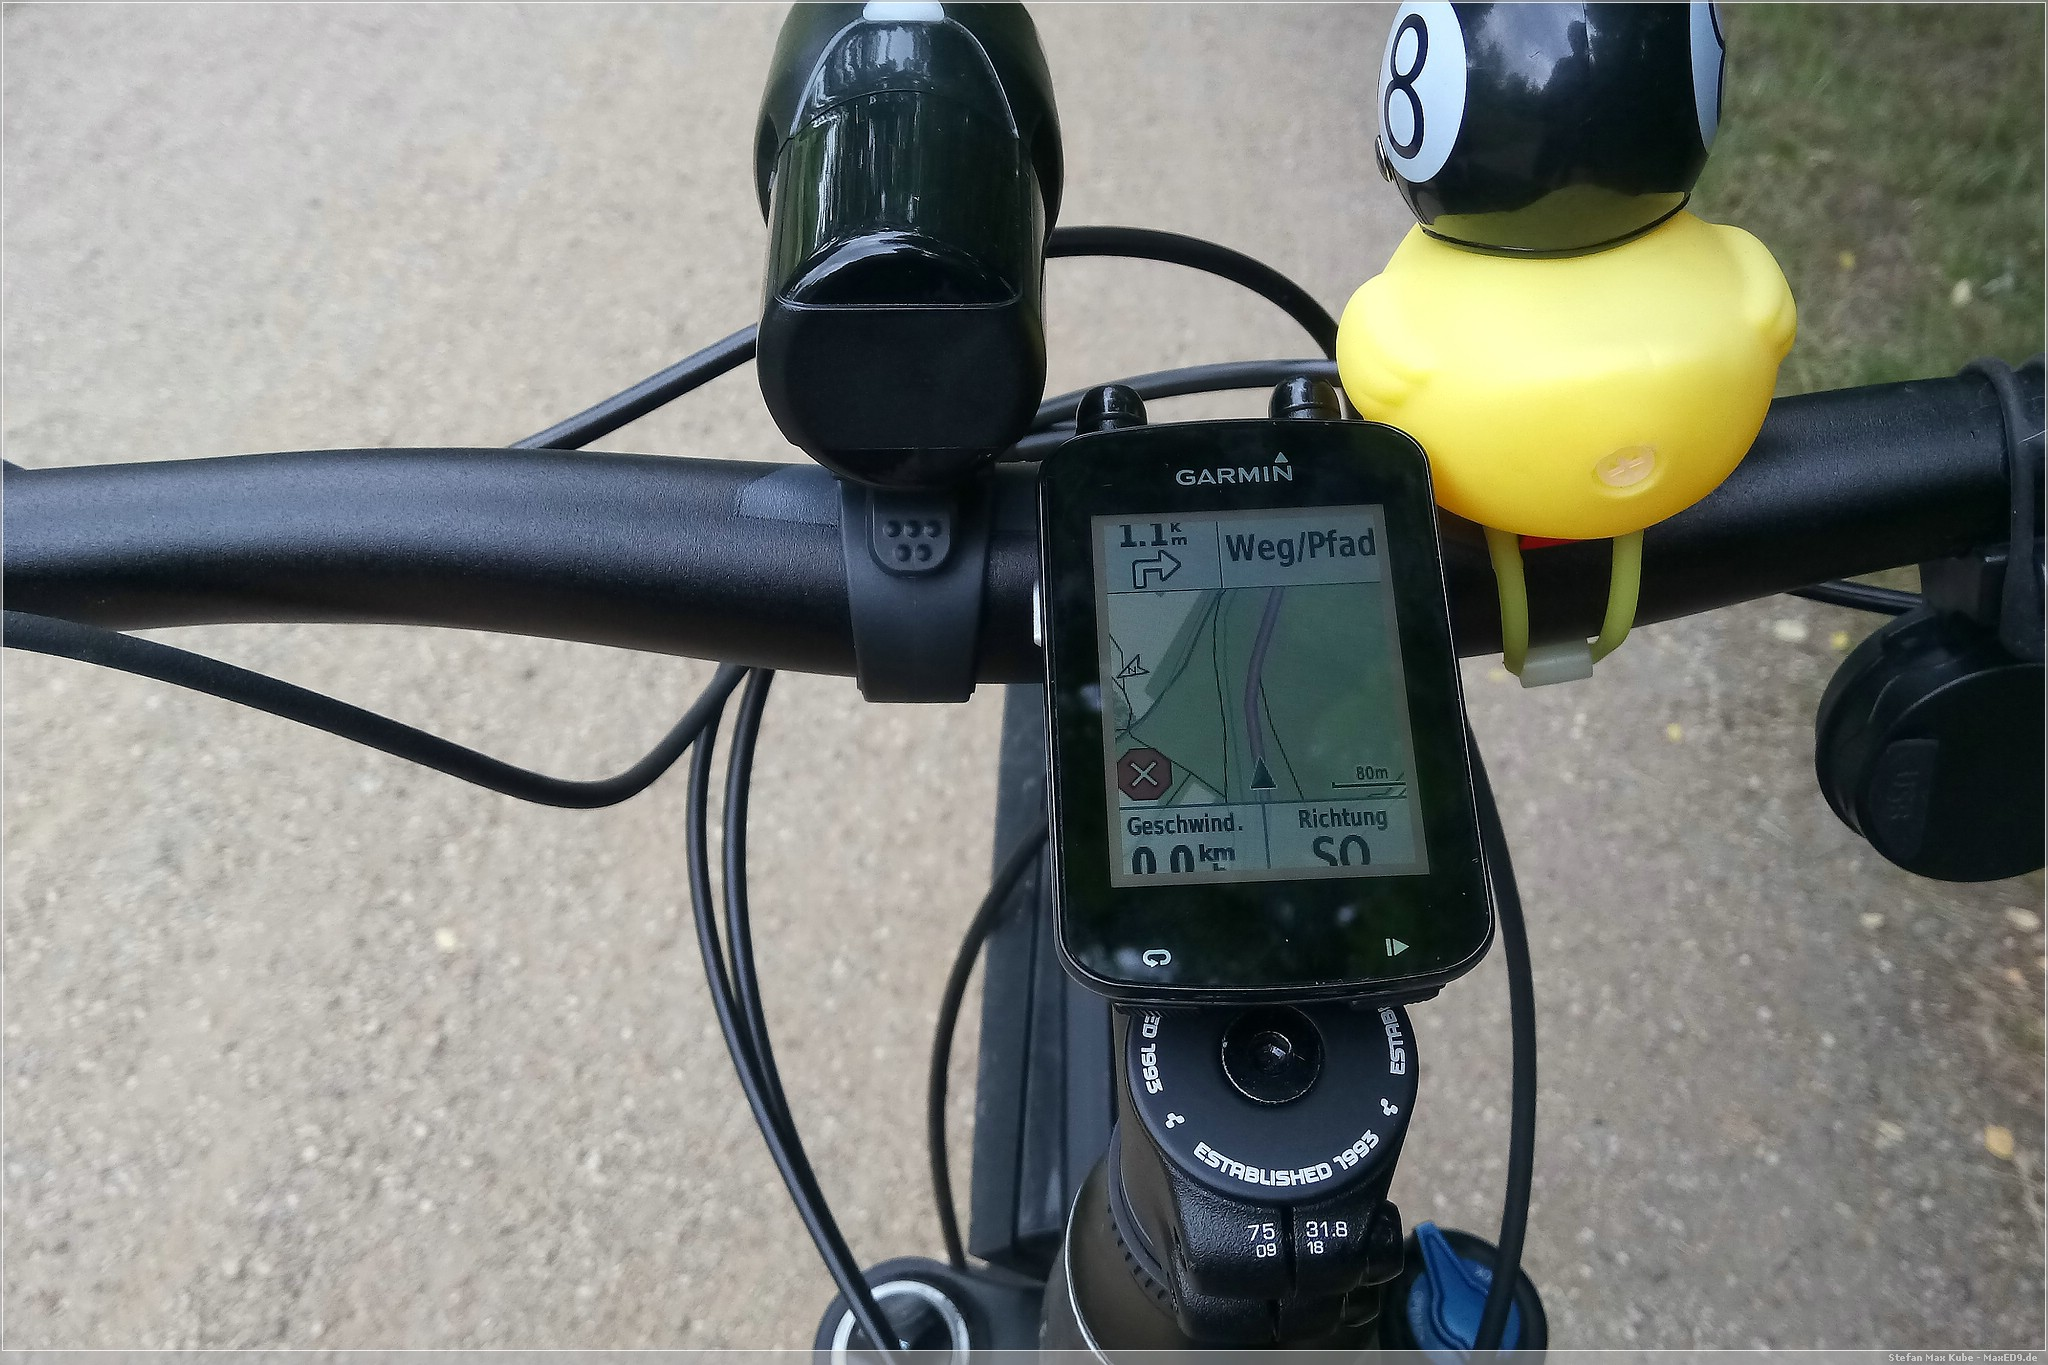 Garmin Edge 820, Routing